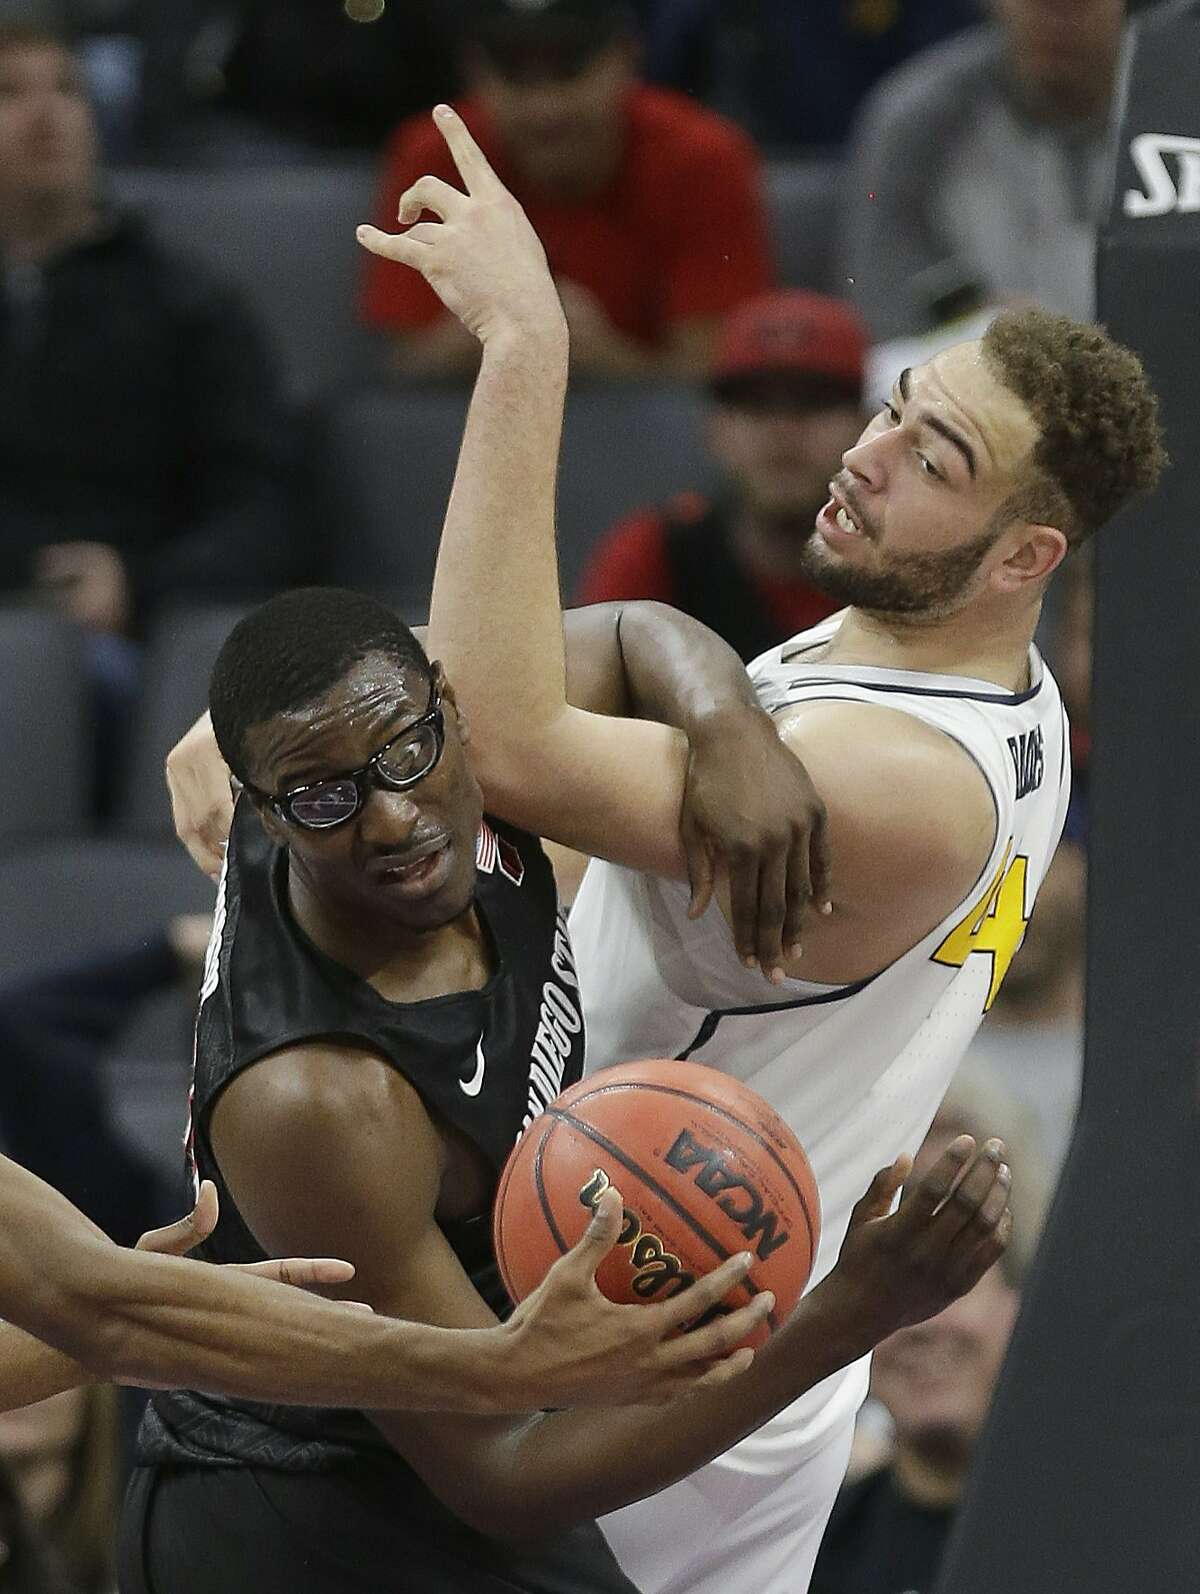 San Diego State Aztecs center Valentine Izundu, left, pulls a rebound away from California center Kameron Rooks during the first half of an NCAA college basketball game in Sacramento, Calif., Monday, Nov. 21, 2016. (AP Photo/Rich Pedroncelli)